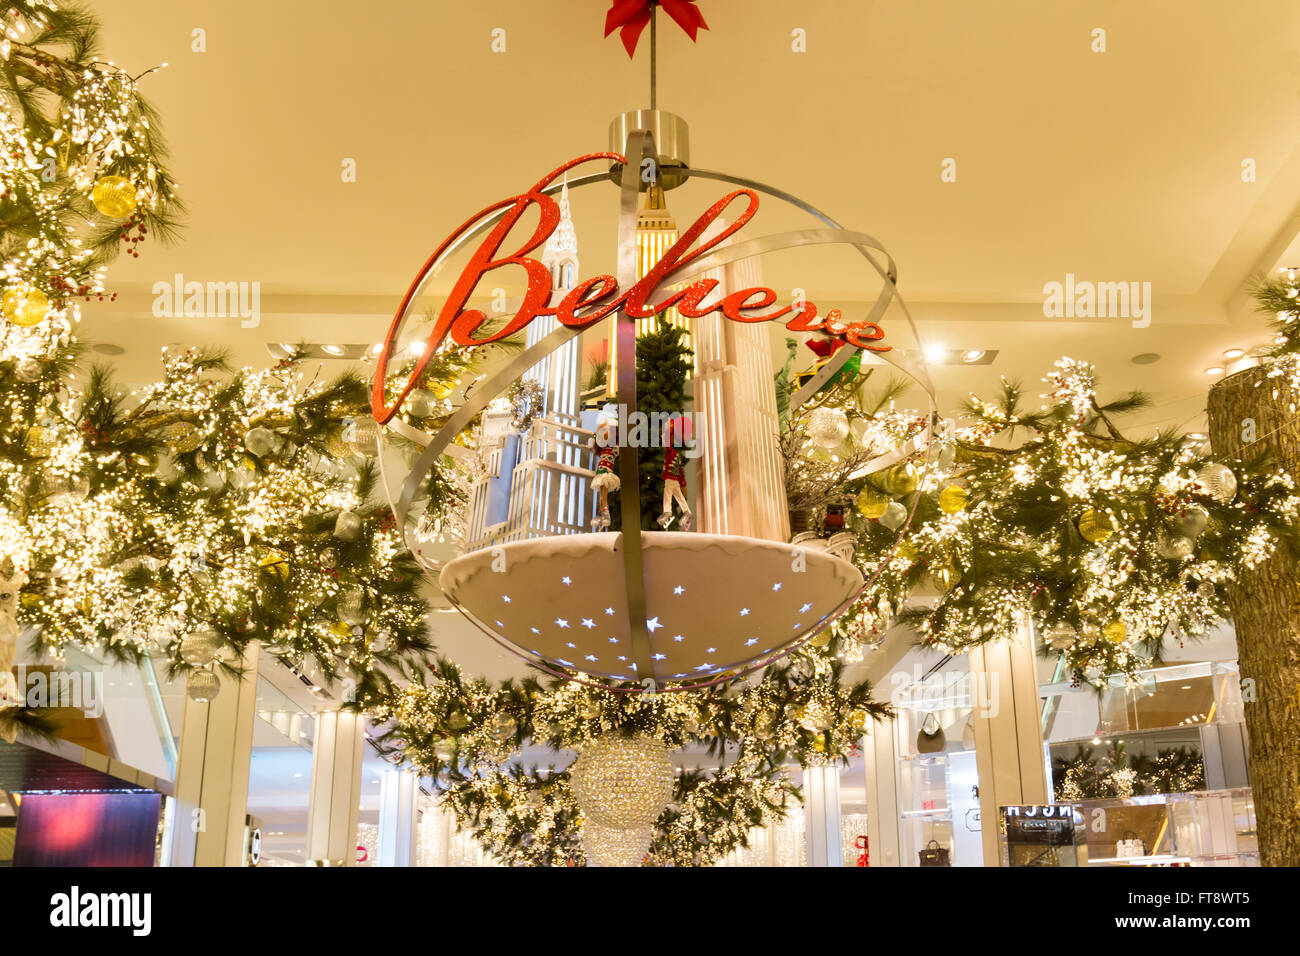 Christmas Sign in department store. - Stock Image